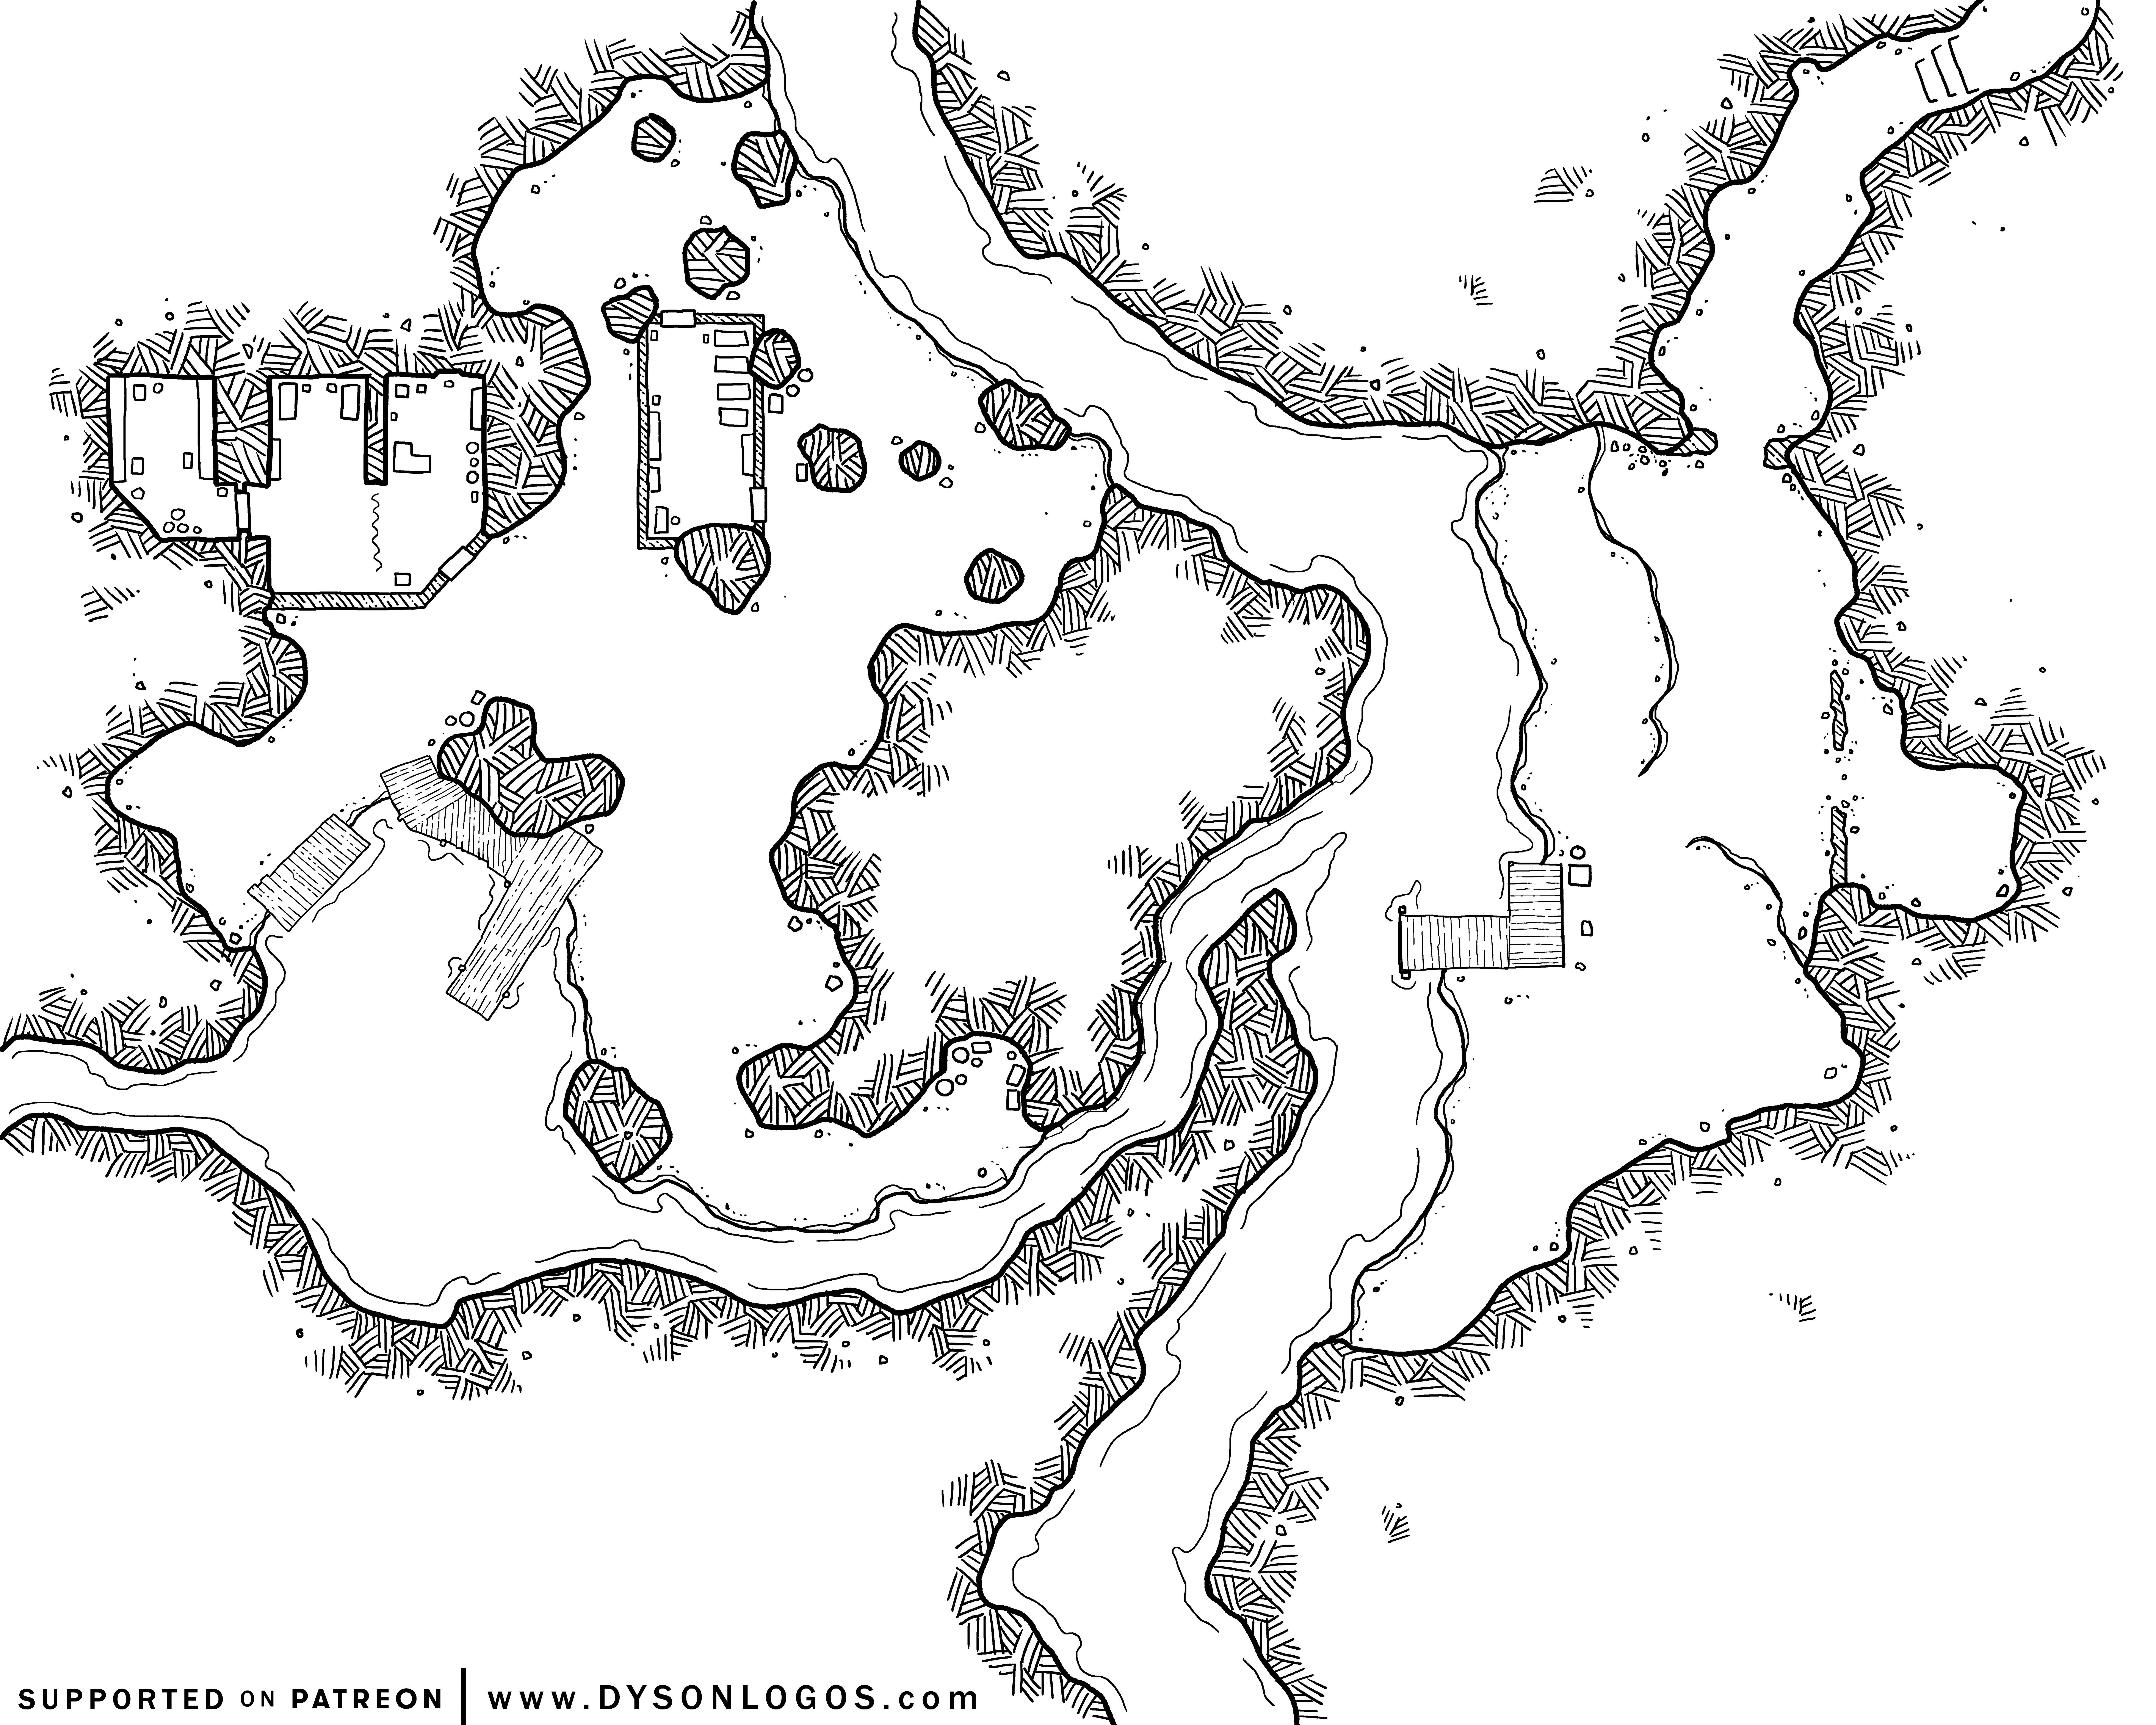 Bloodmarket Cave (no grid) (1200 dpi)